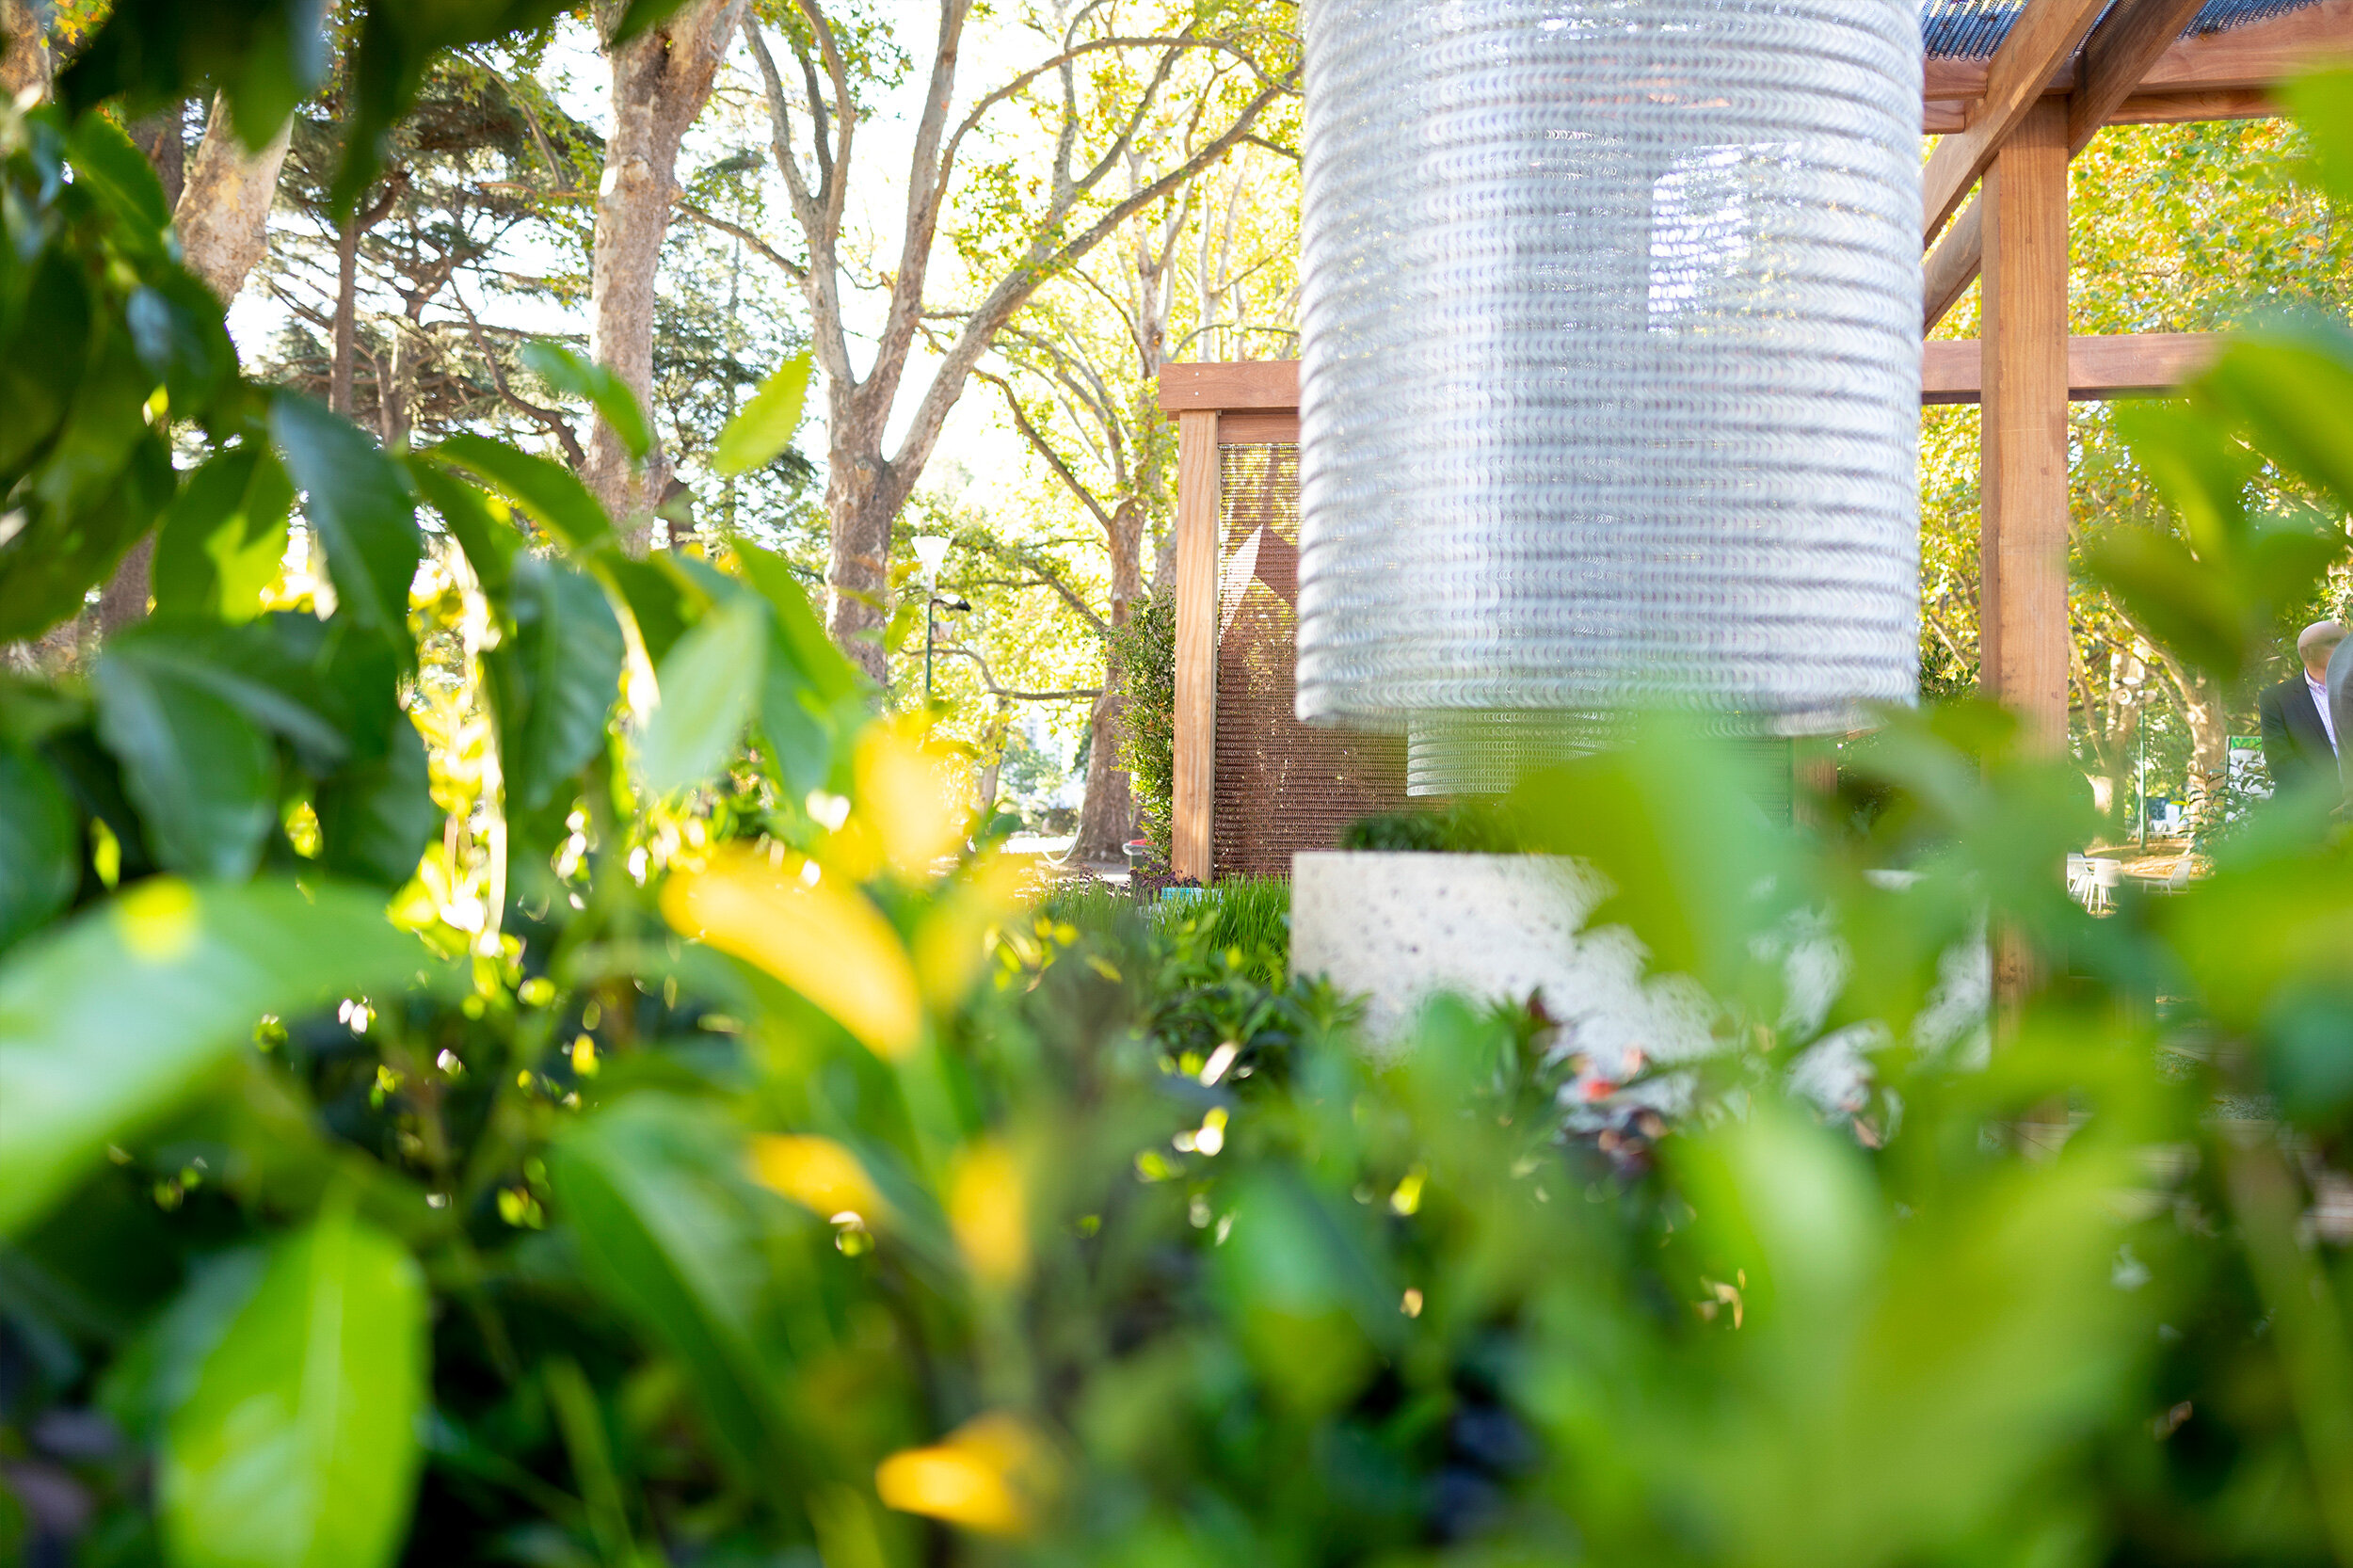 Melbourne Garden Show 2019 with Kaynemaile mesh